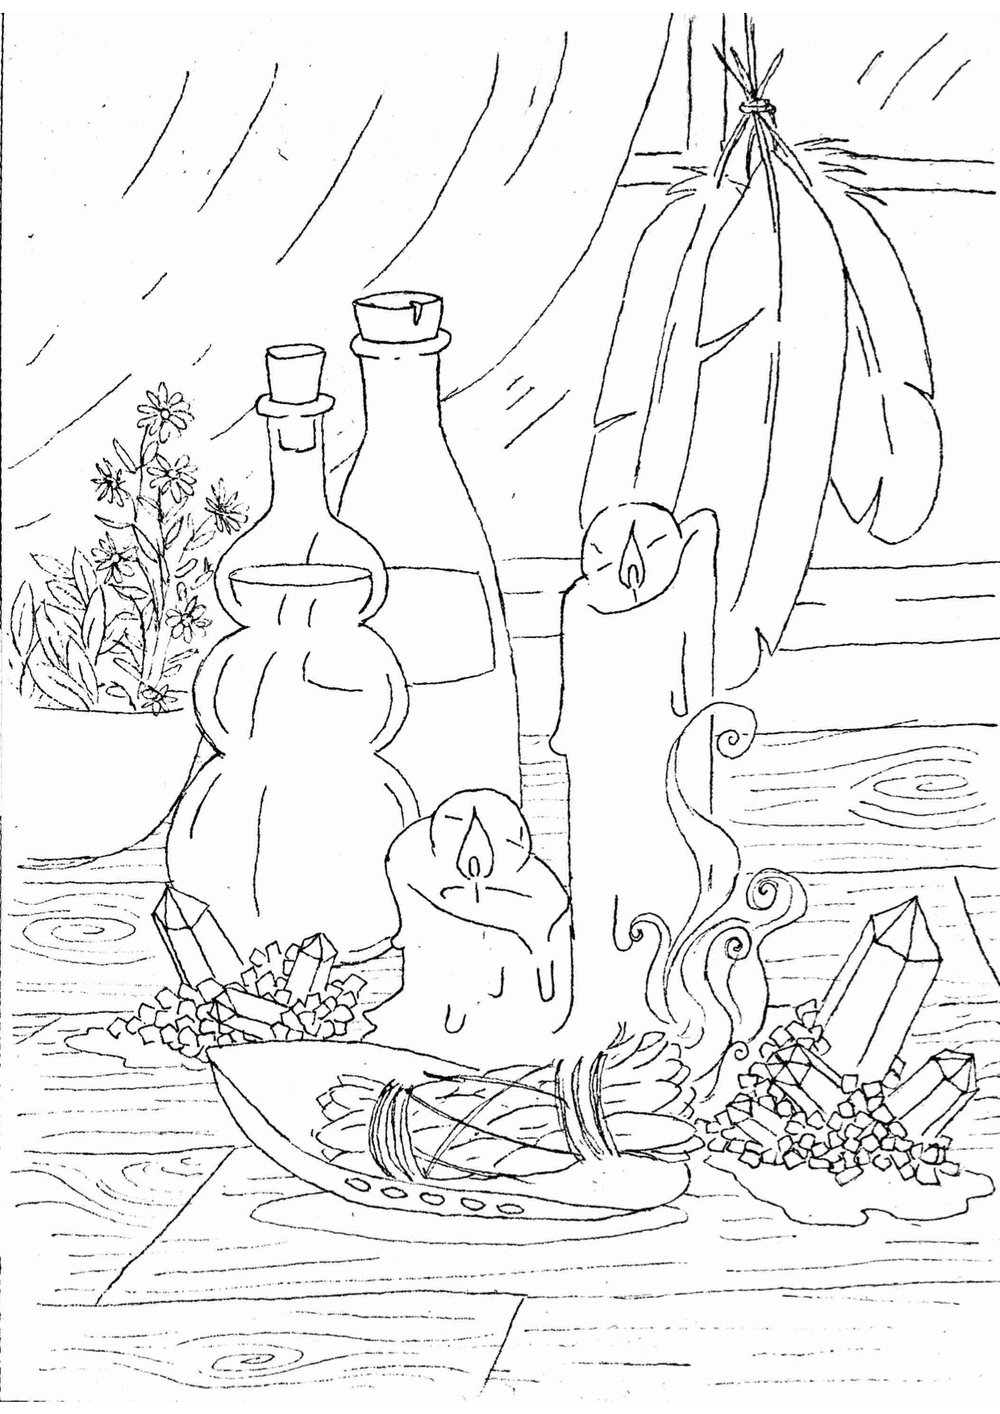 Sage Smudge Coloring Page.jpg